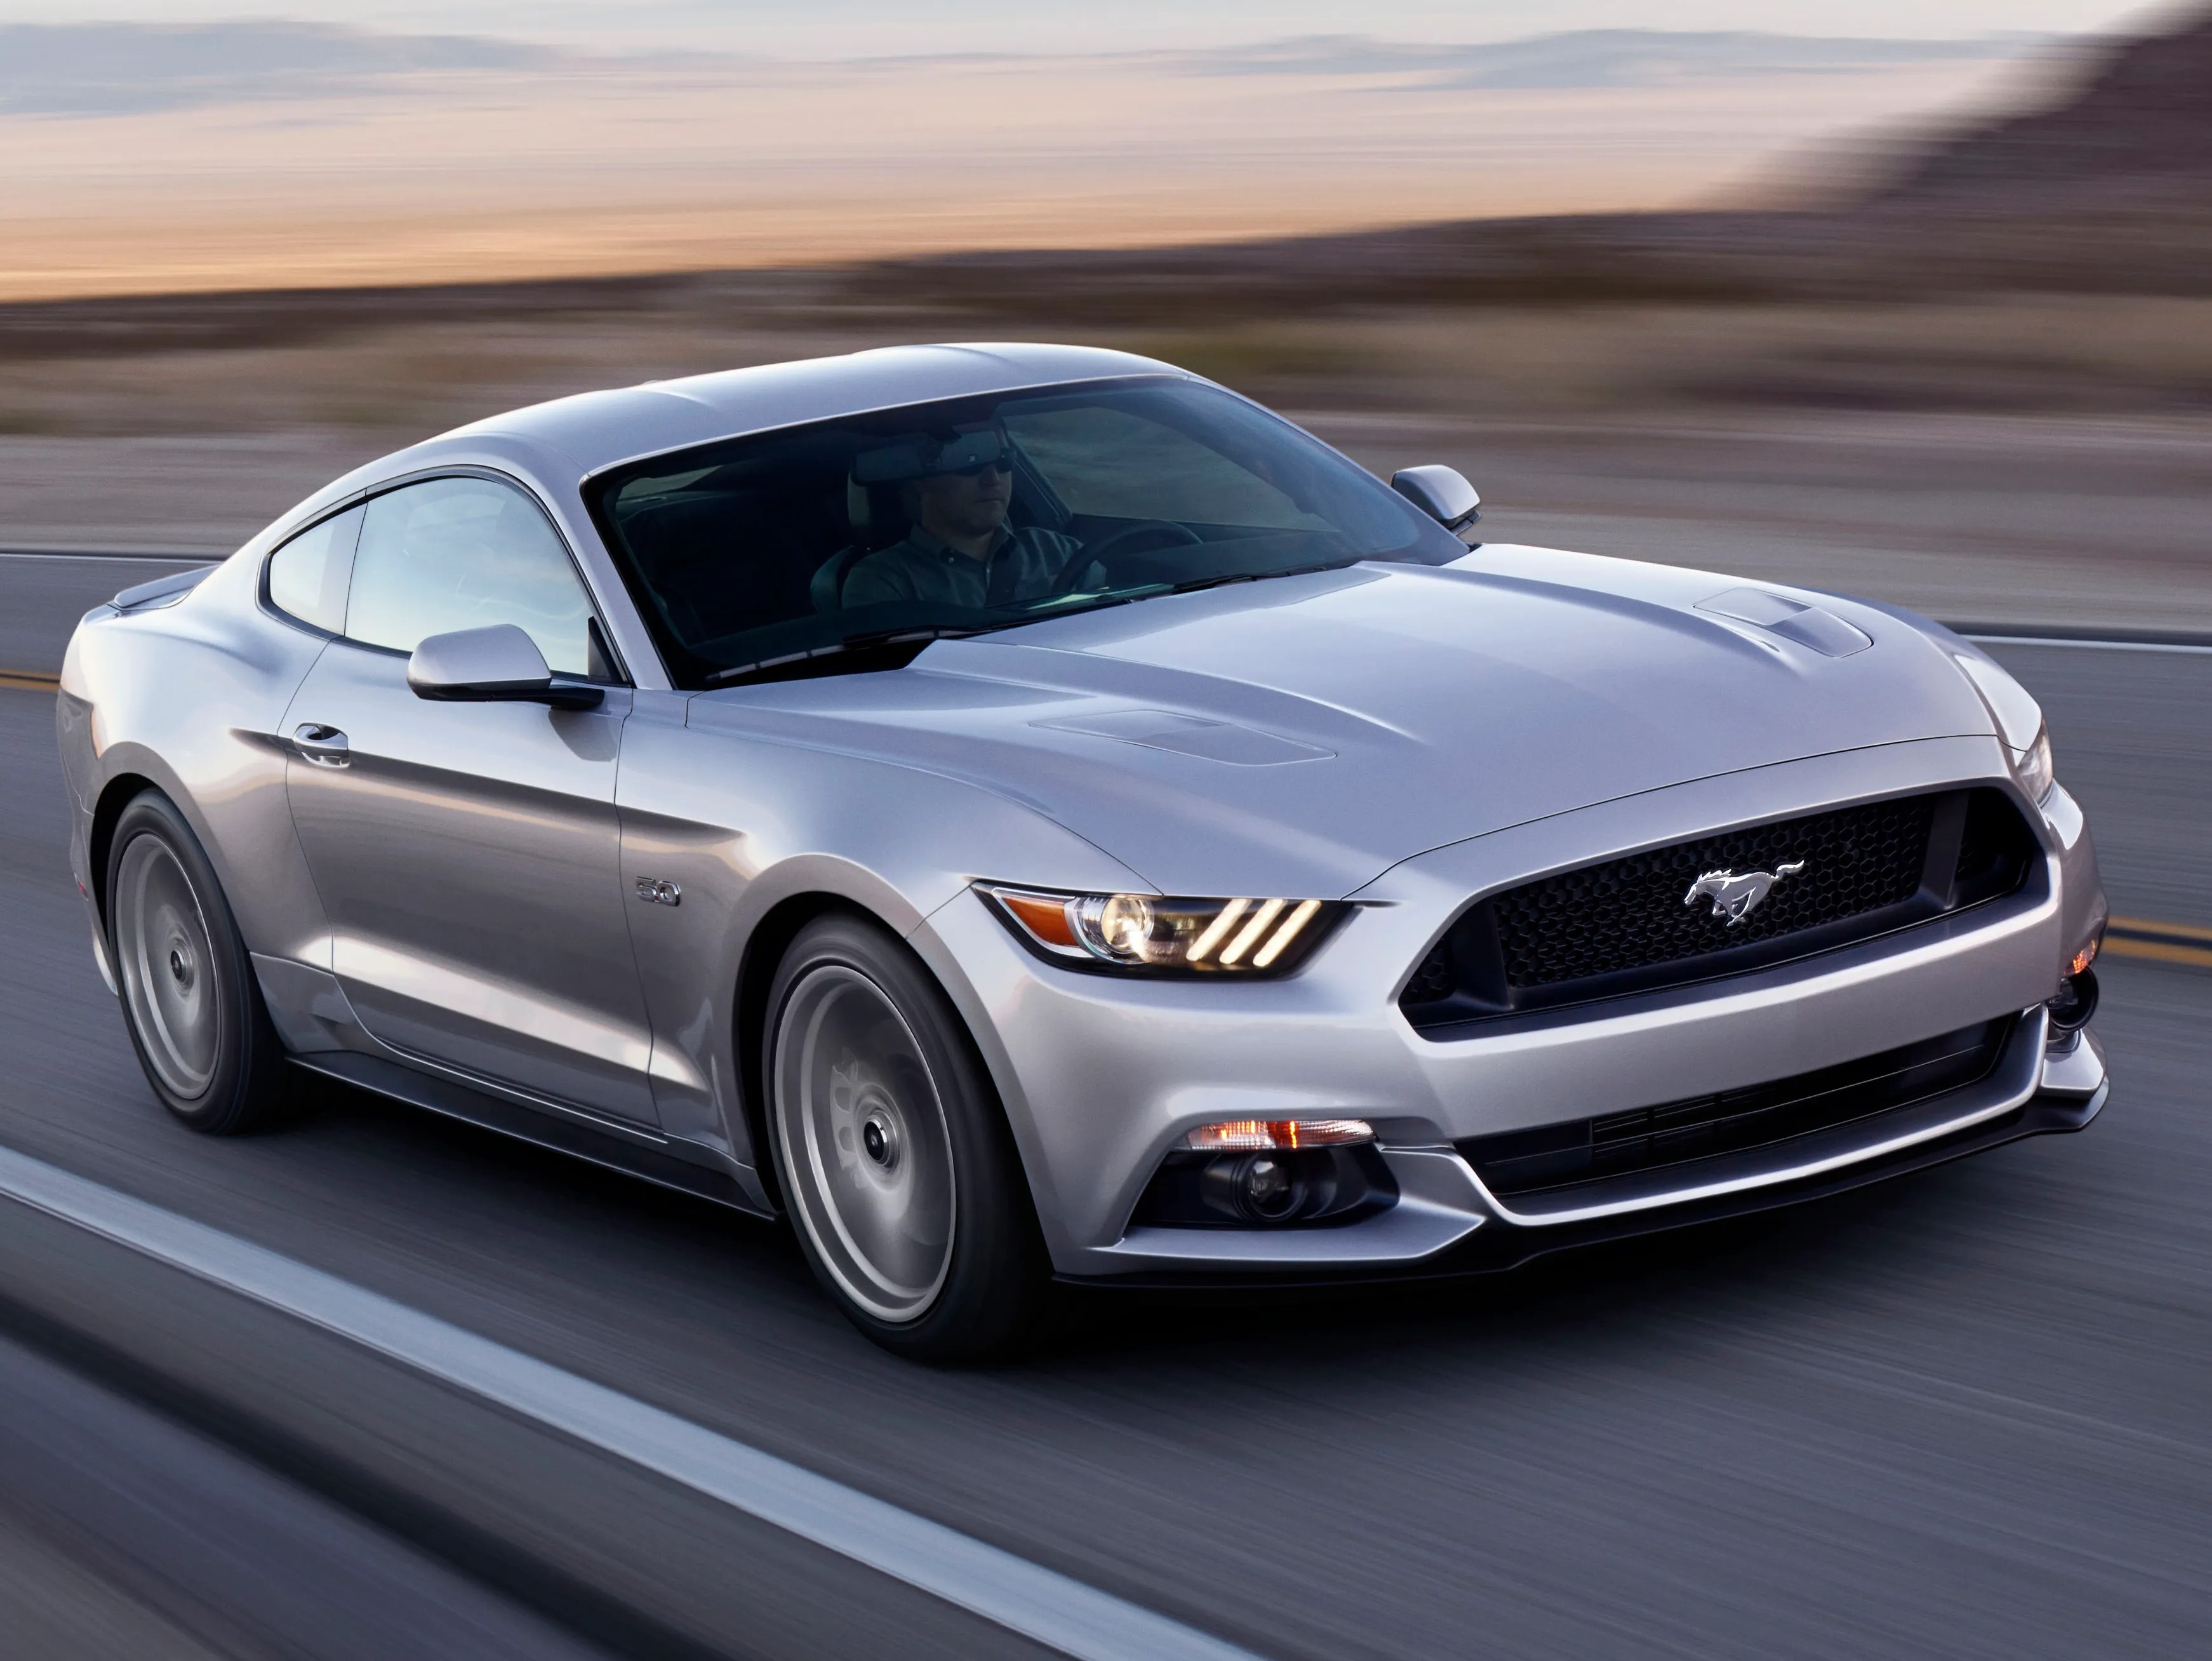 2015 Ford Mustang on dealer lots next month